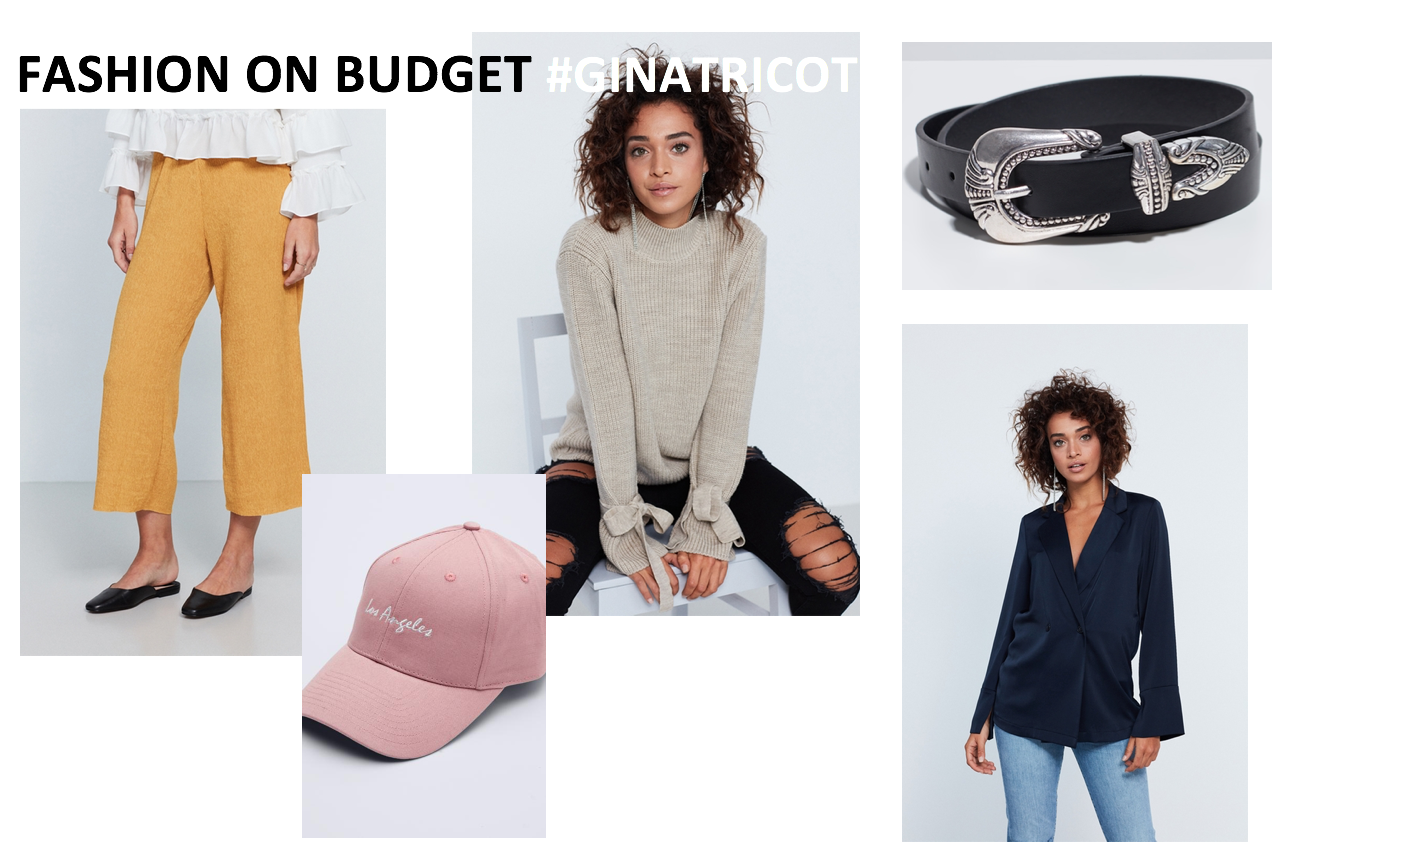 FASHION ON BUDGET #GINATRICOT (12 ITEMS UNDER 300KR)